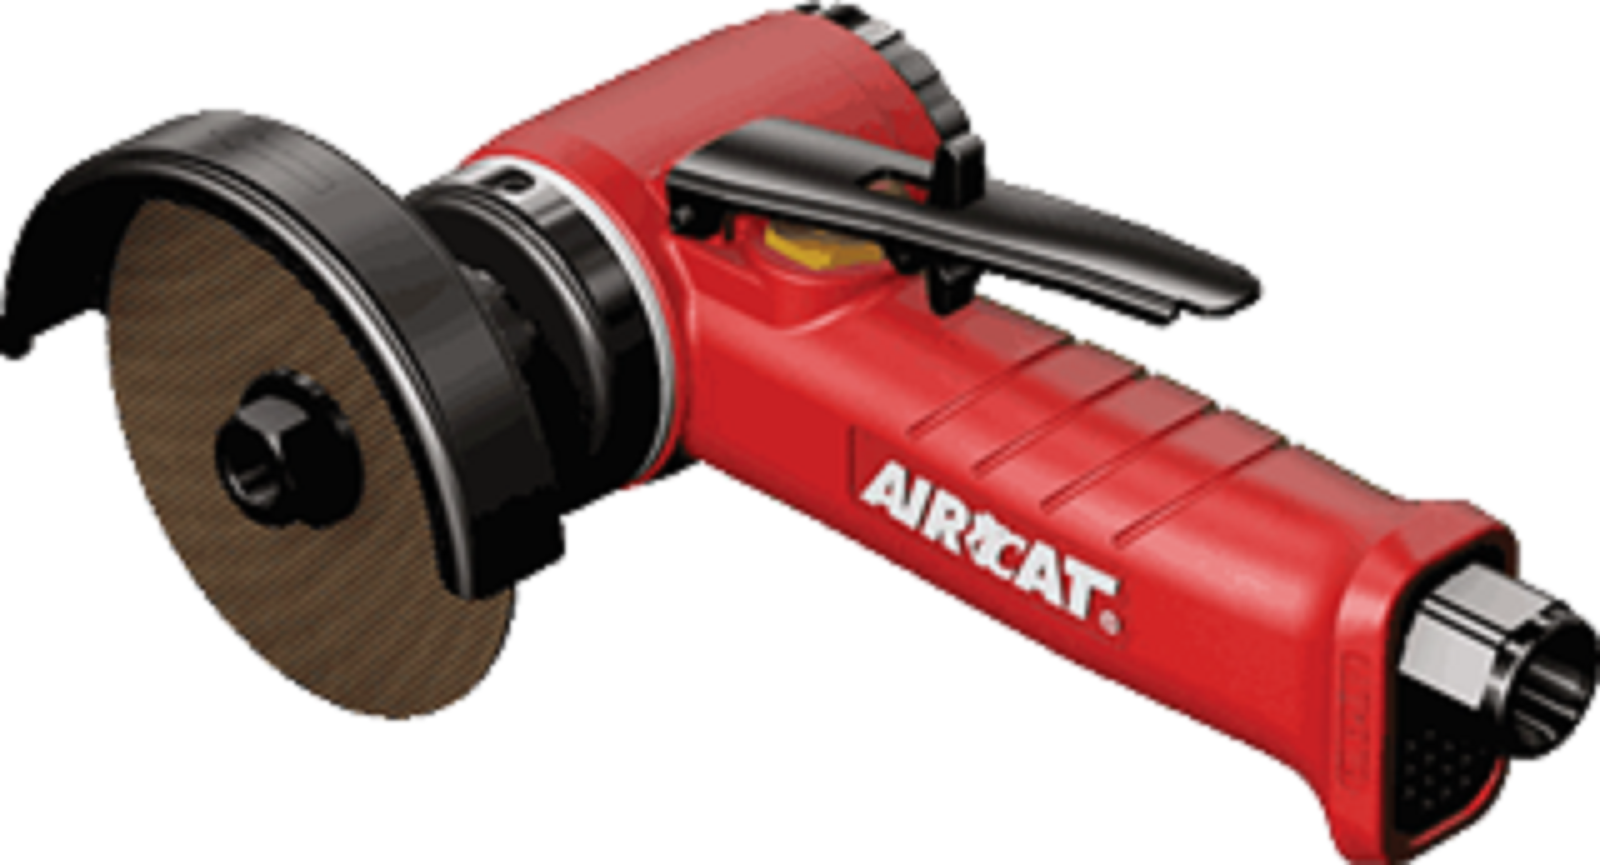 """Aircat 6525-A In-line Cut-Off Tool,Indexible Guard, 3"""" Wheel, Free S&H"""